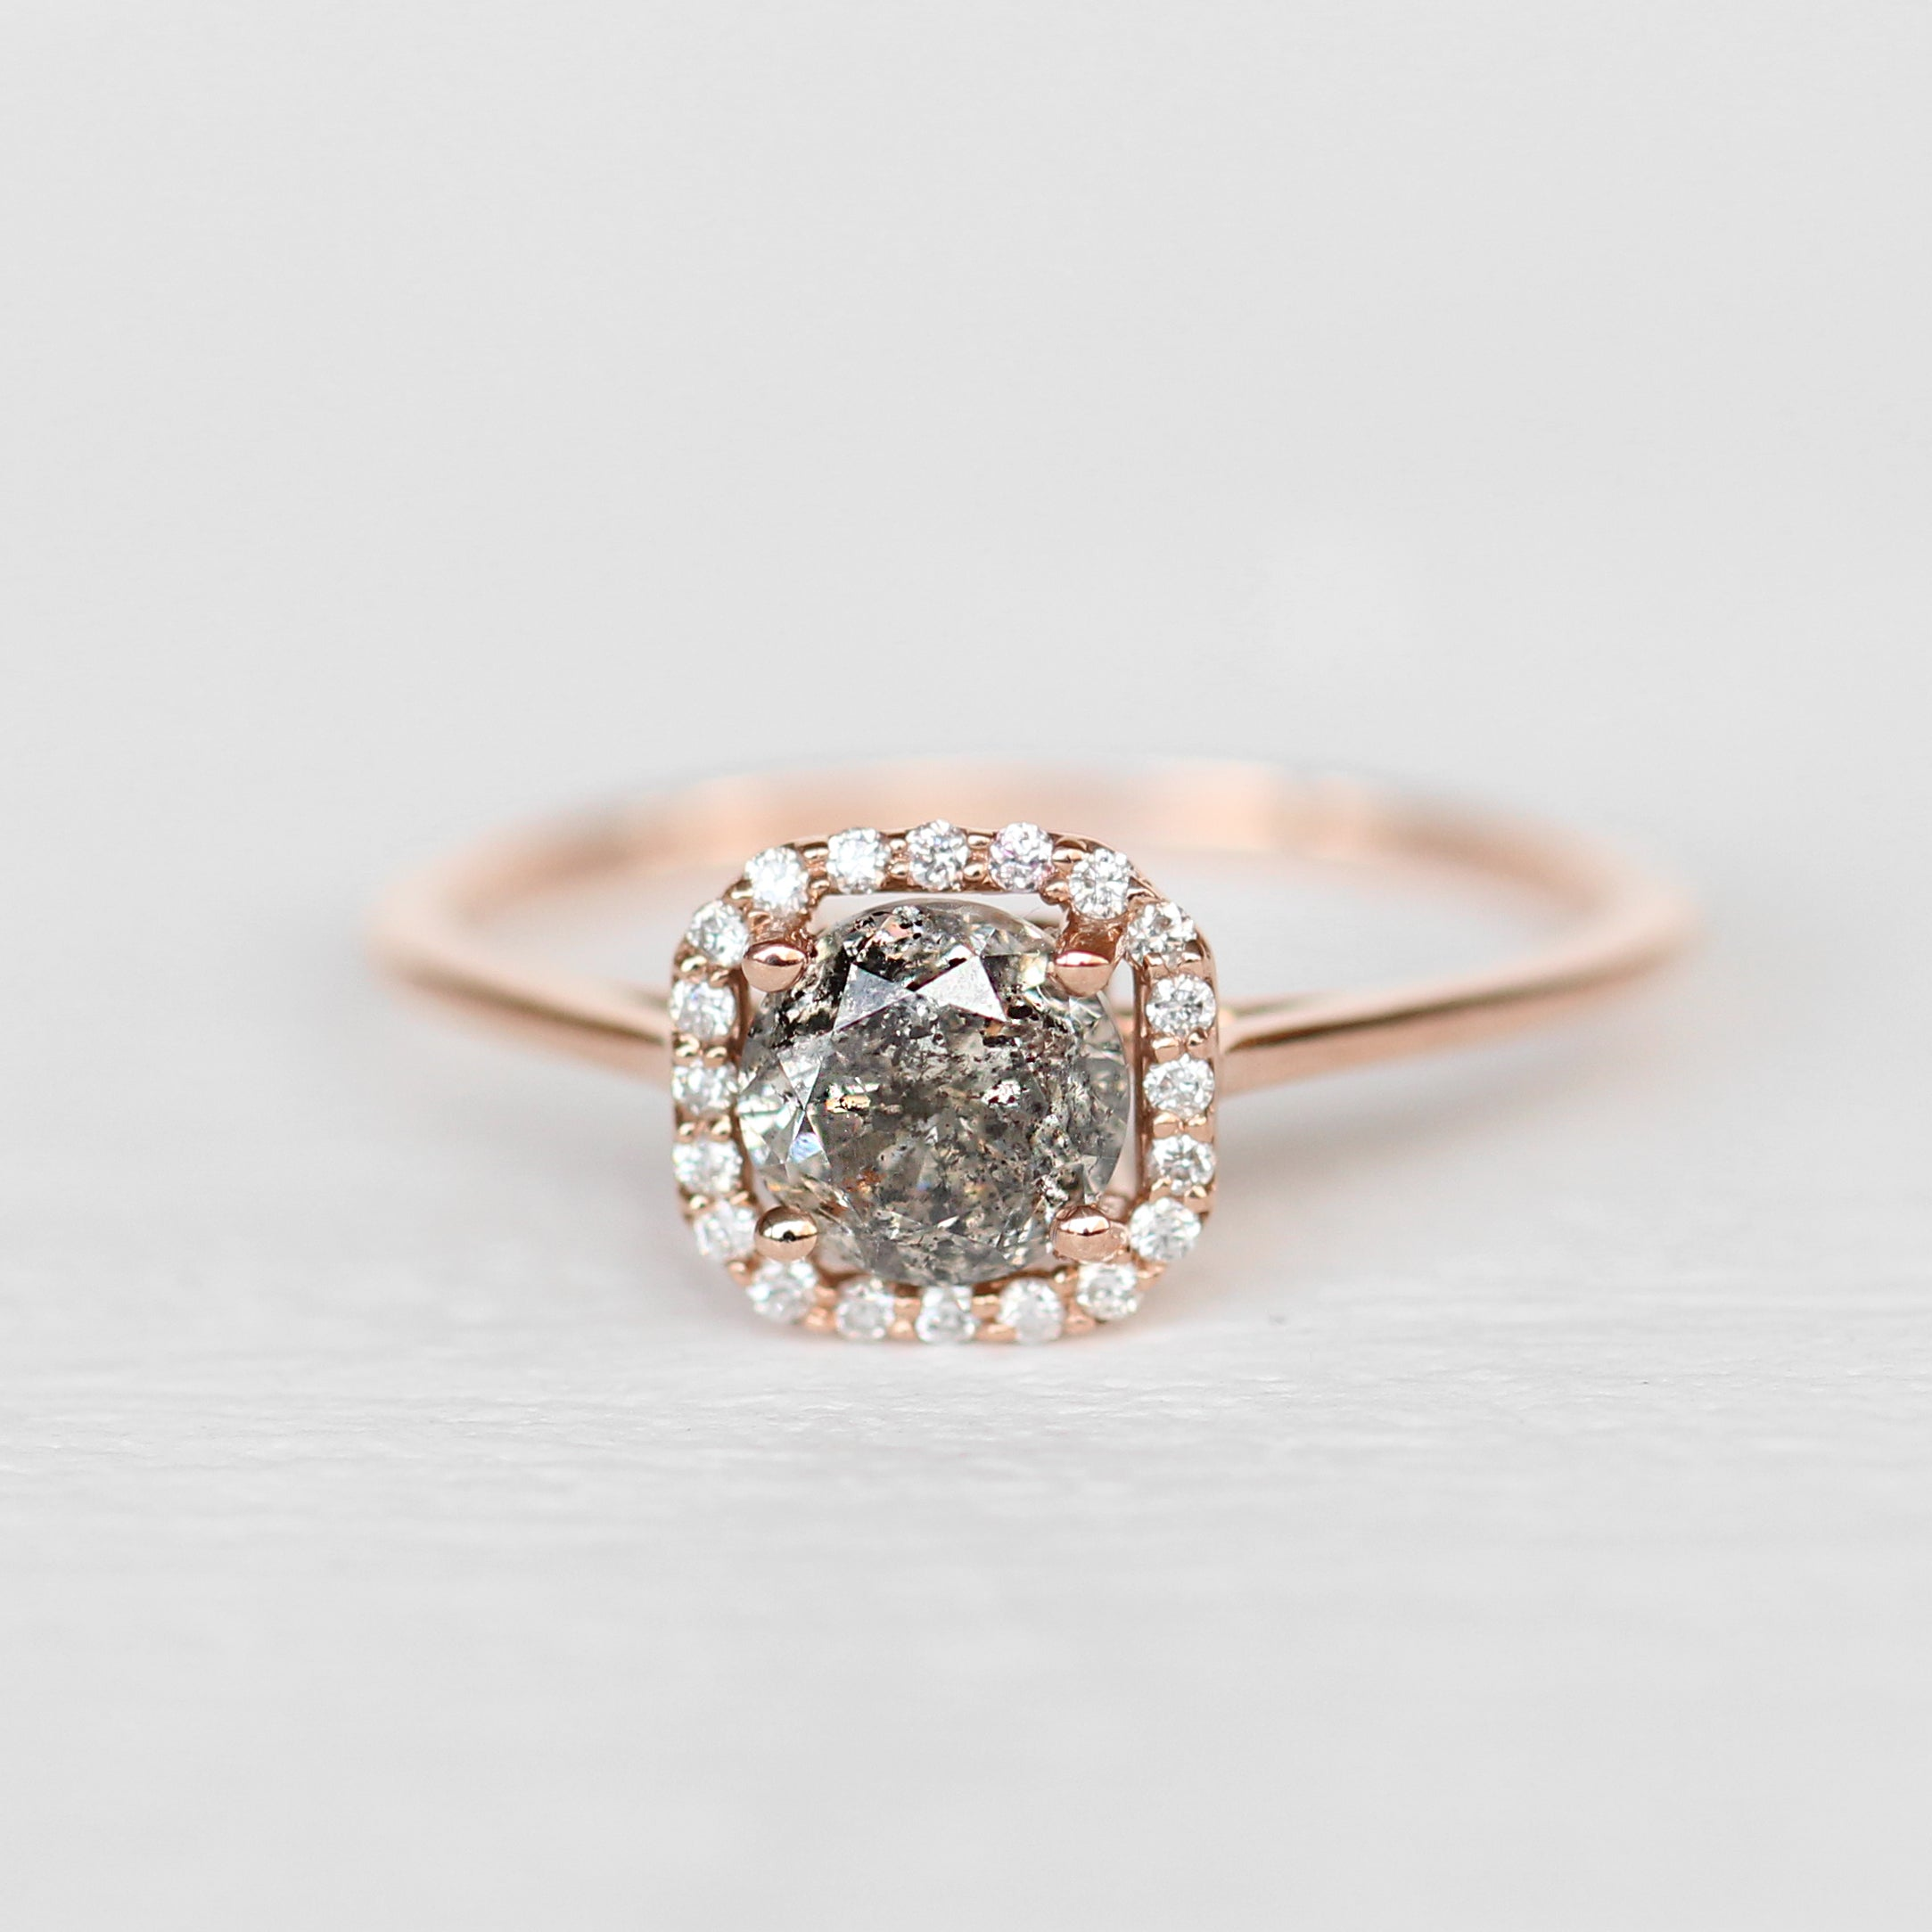 Amelia Ring with a Clear Gray Celestial Diamond in 14k Rose Gold - Ready to Size and Ship